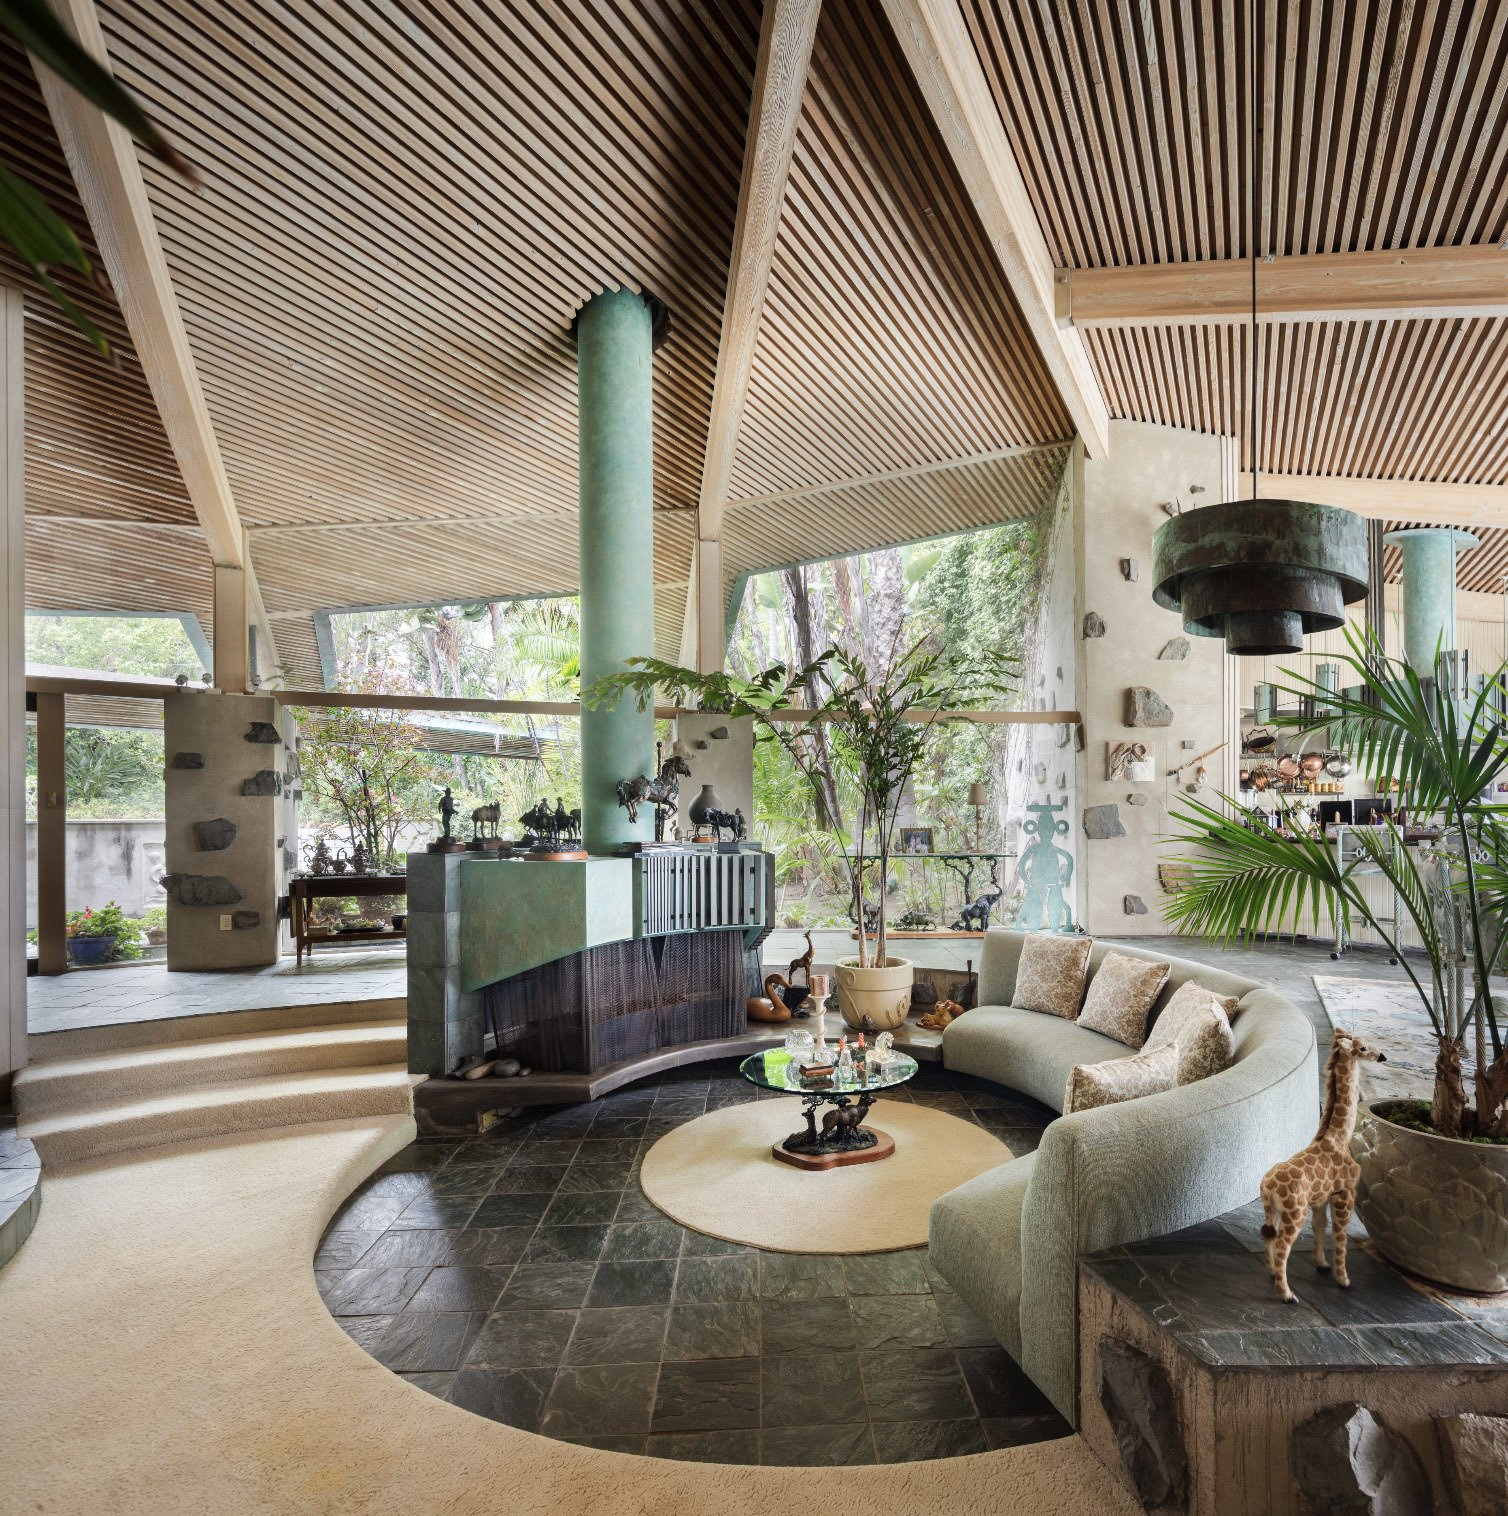 A One-of-a-Kind Midcentury Modern Has Resurfaced on the Market to the Tune of $3M